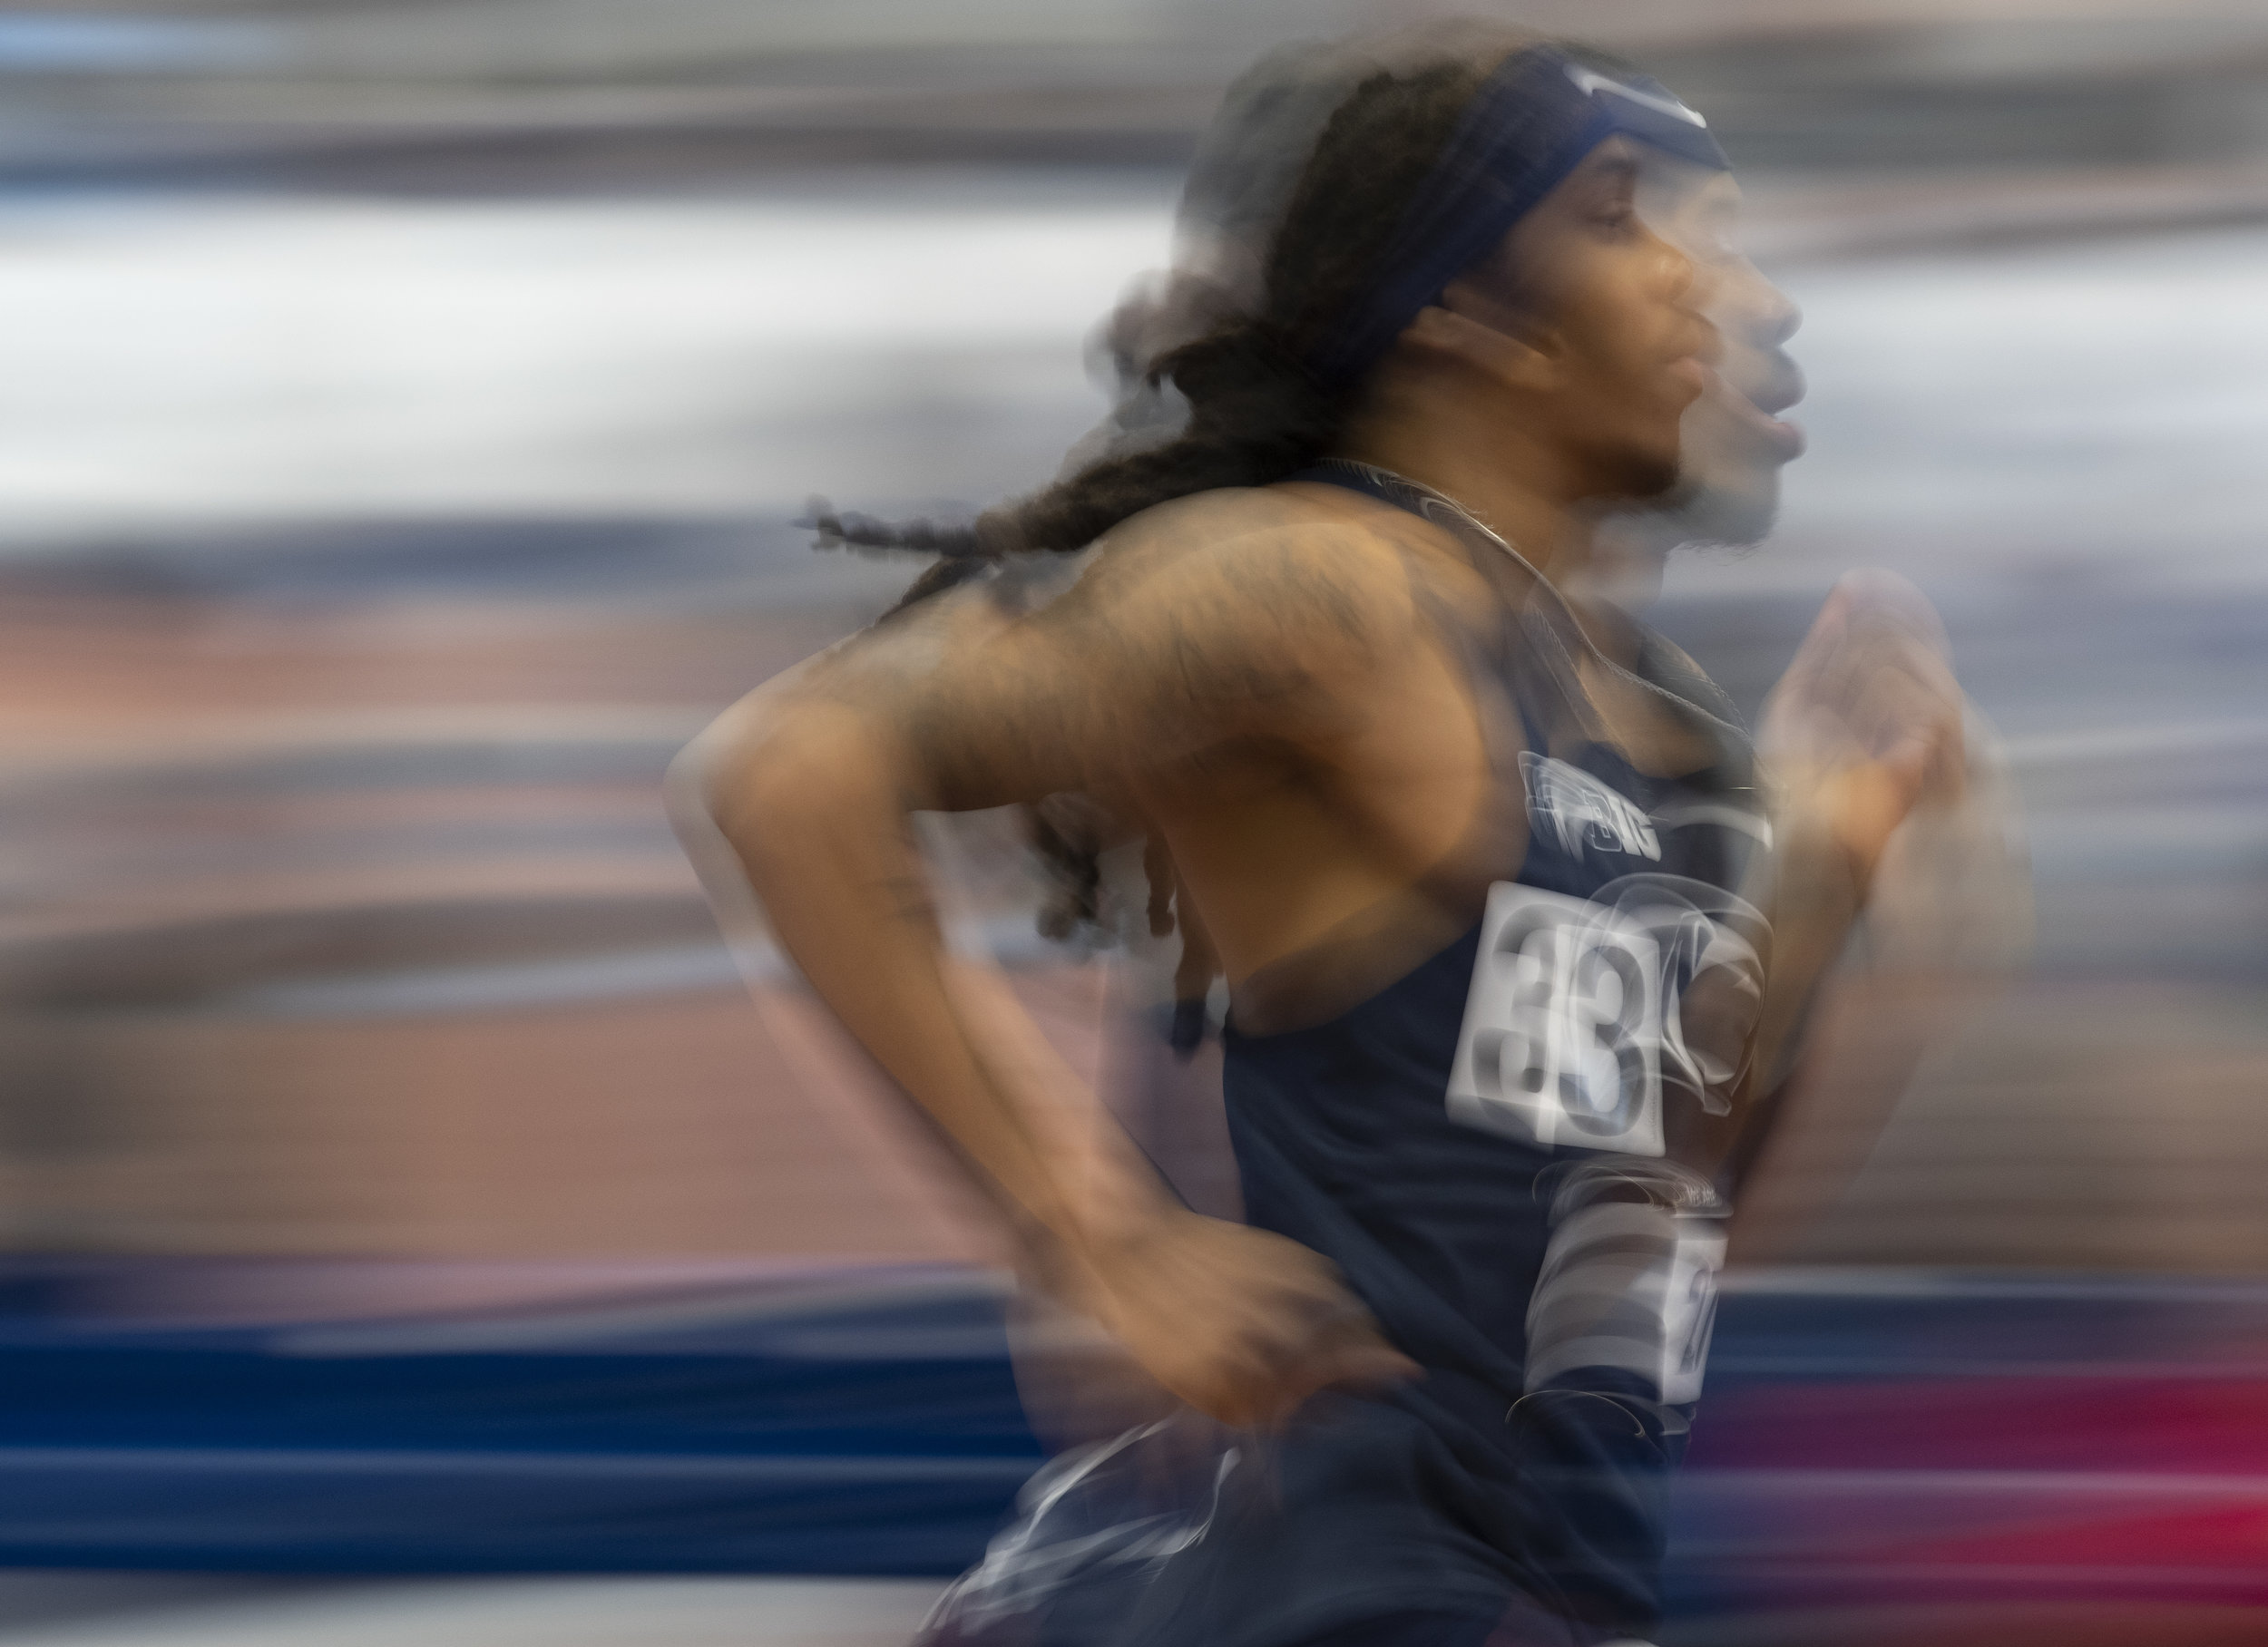 Runner Gary Ross runs in the 600 meter race during the Nittany Lion Challenge at the Horace Ashenfelter III Indoor Track on Saturday, Jan. 12, 2019.